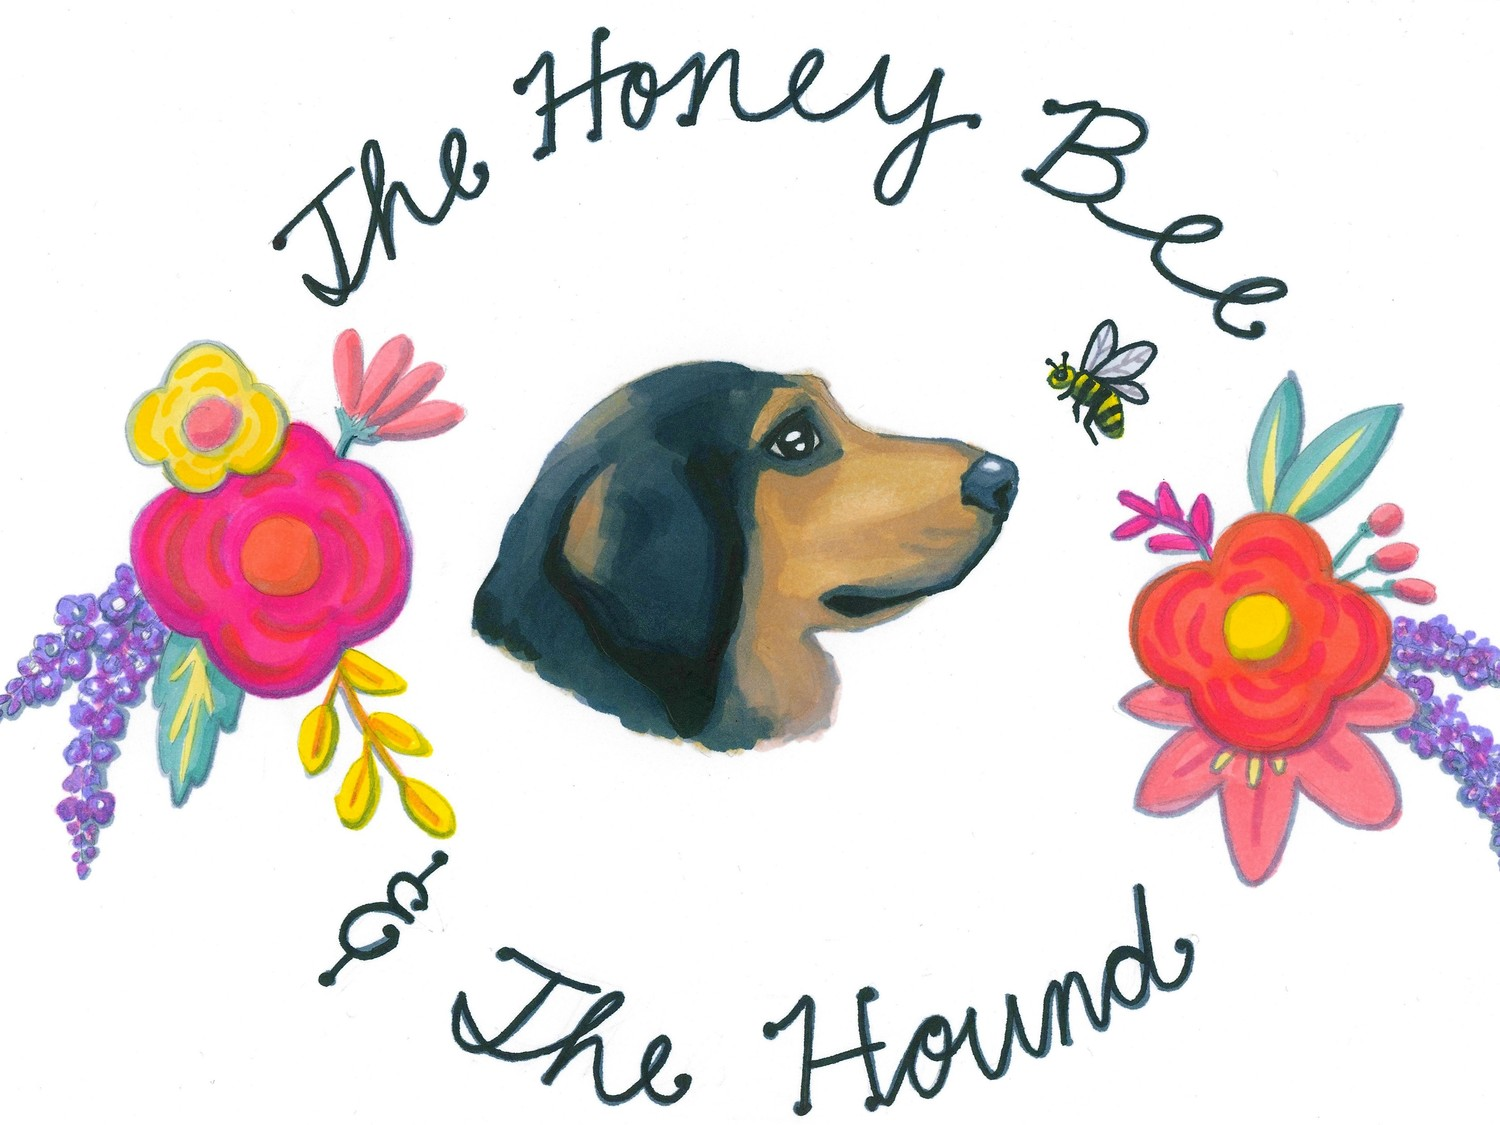 The Honey Bee & the Hound